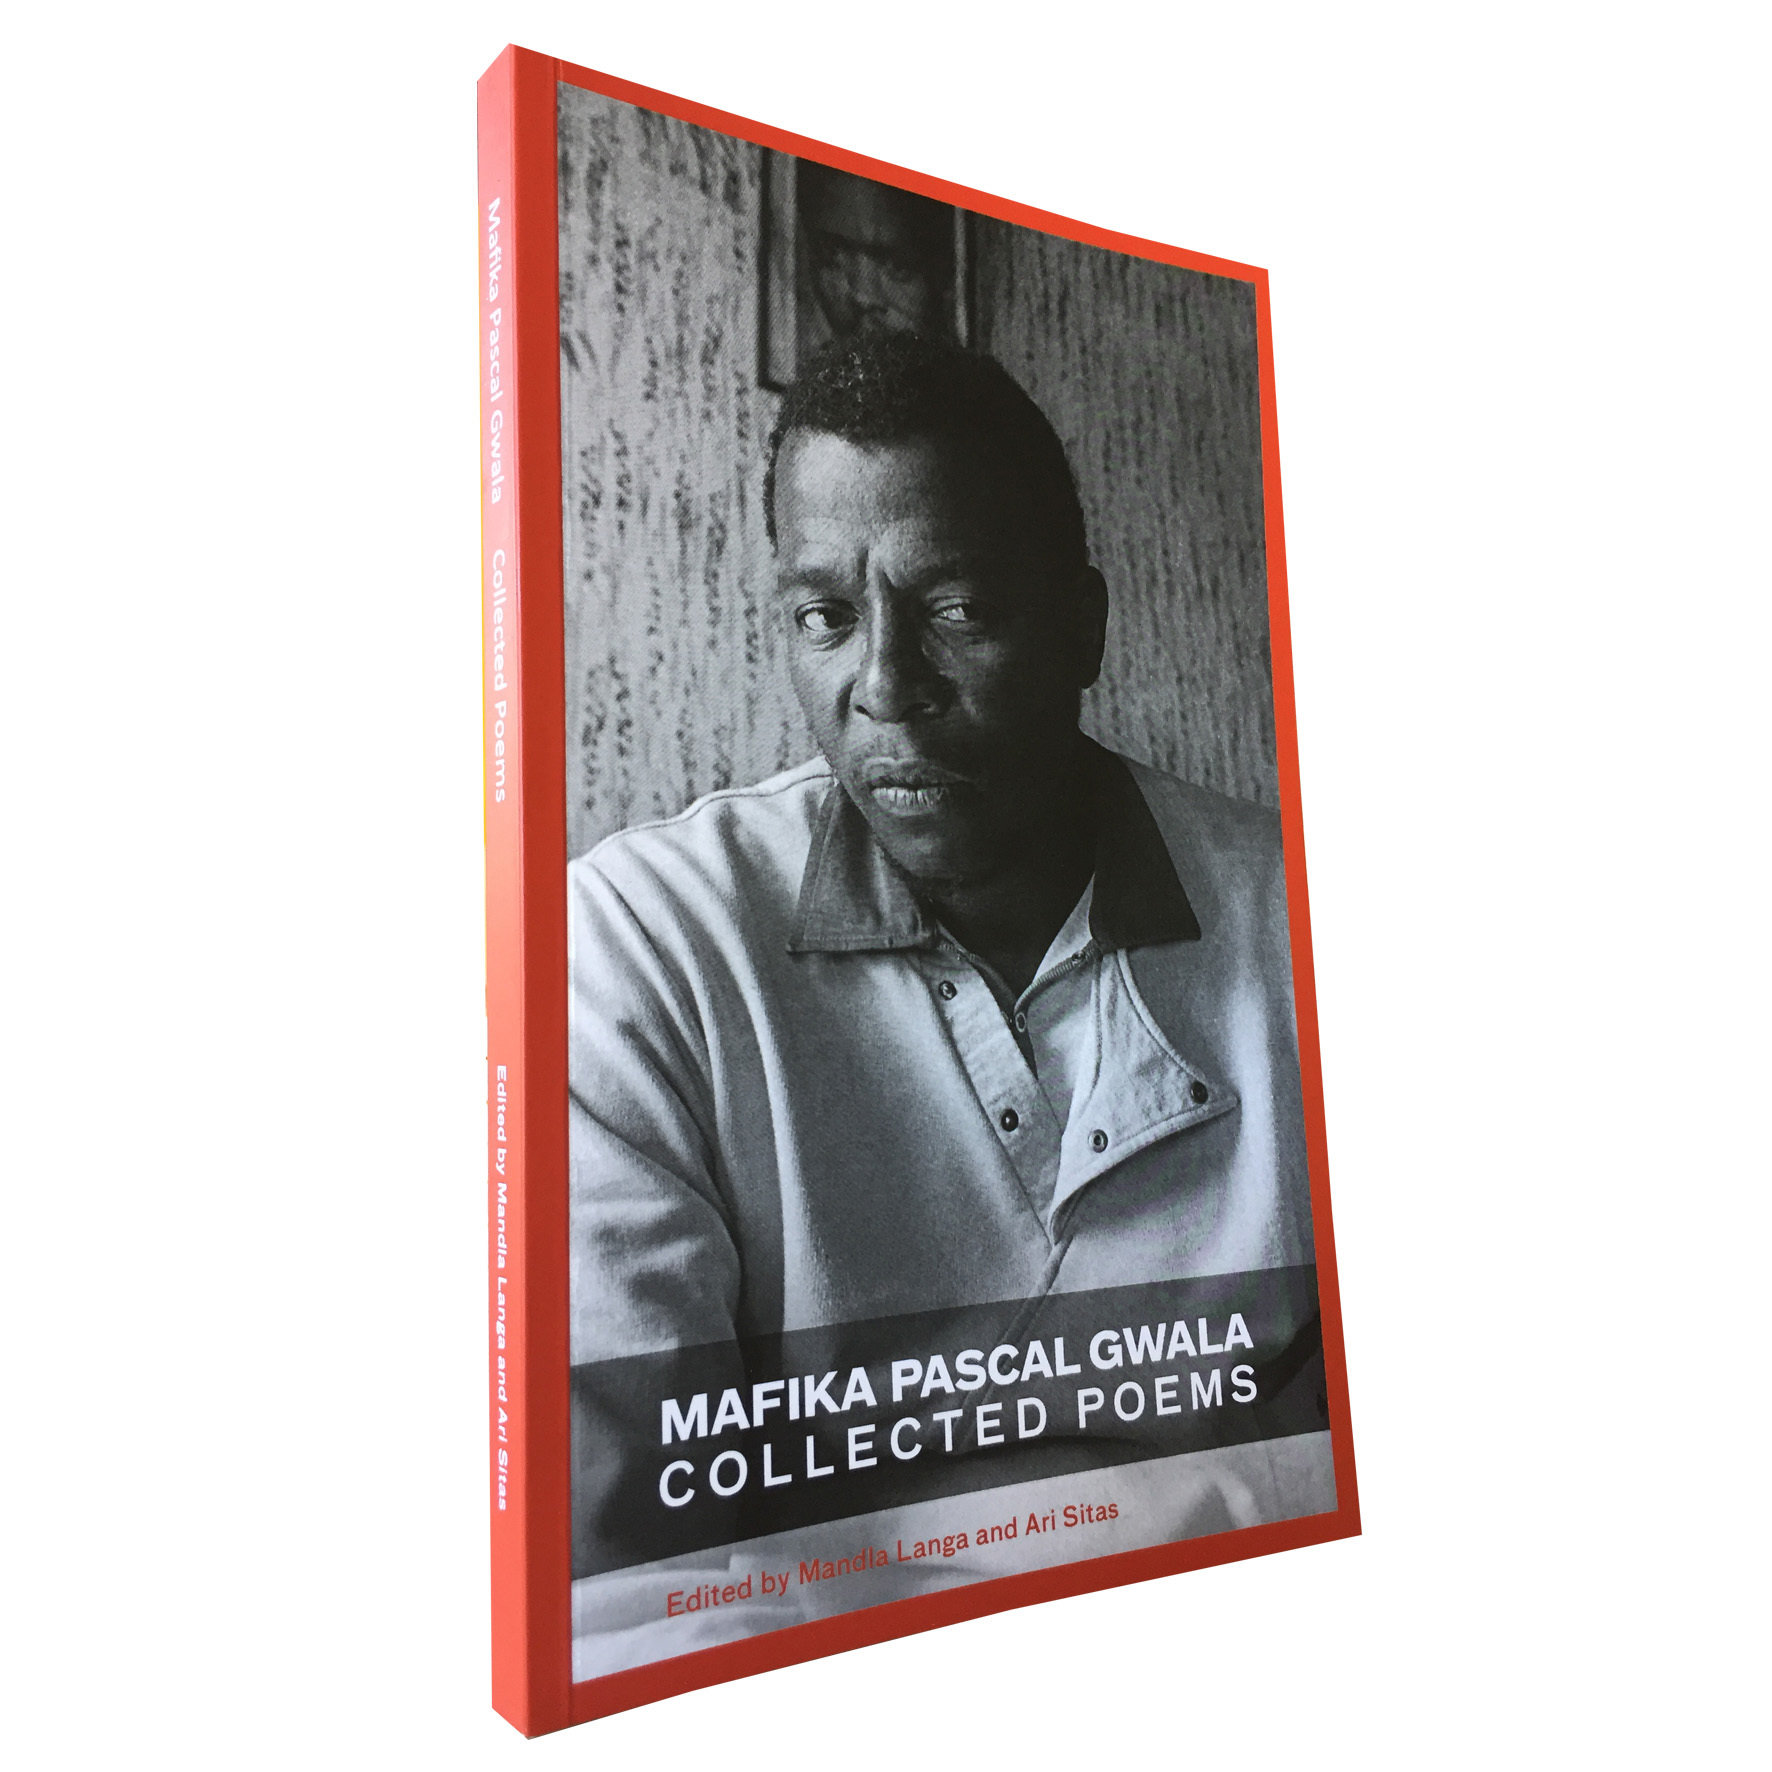 Mafika Pascal Gwala Collected Poems Edited by Mandla Langa and Ari Sitas (Deep South) DP05